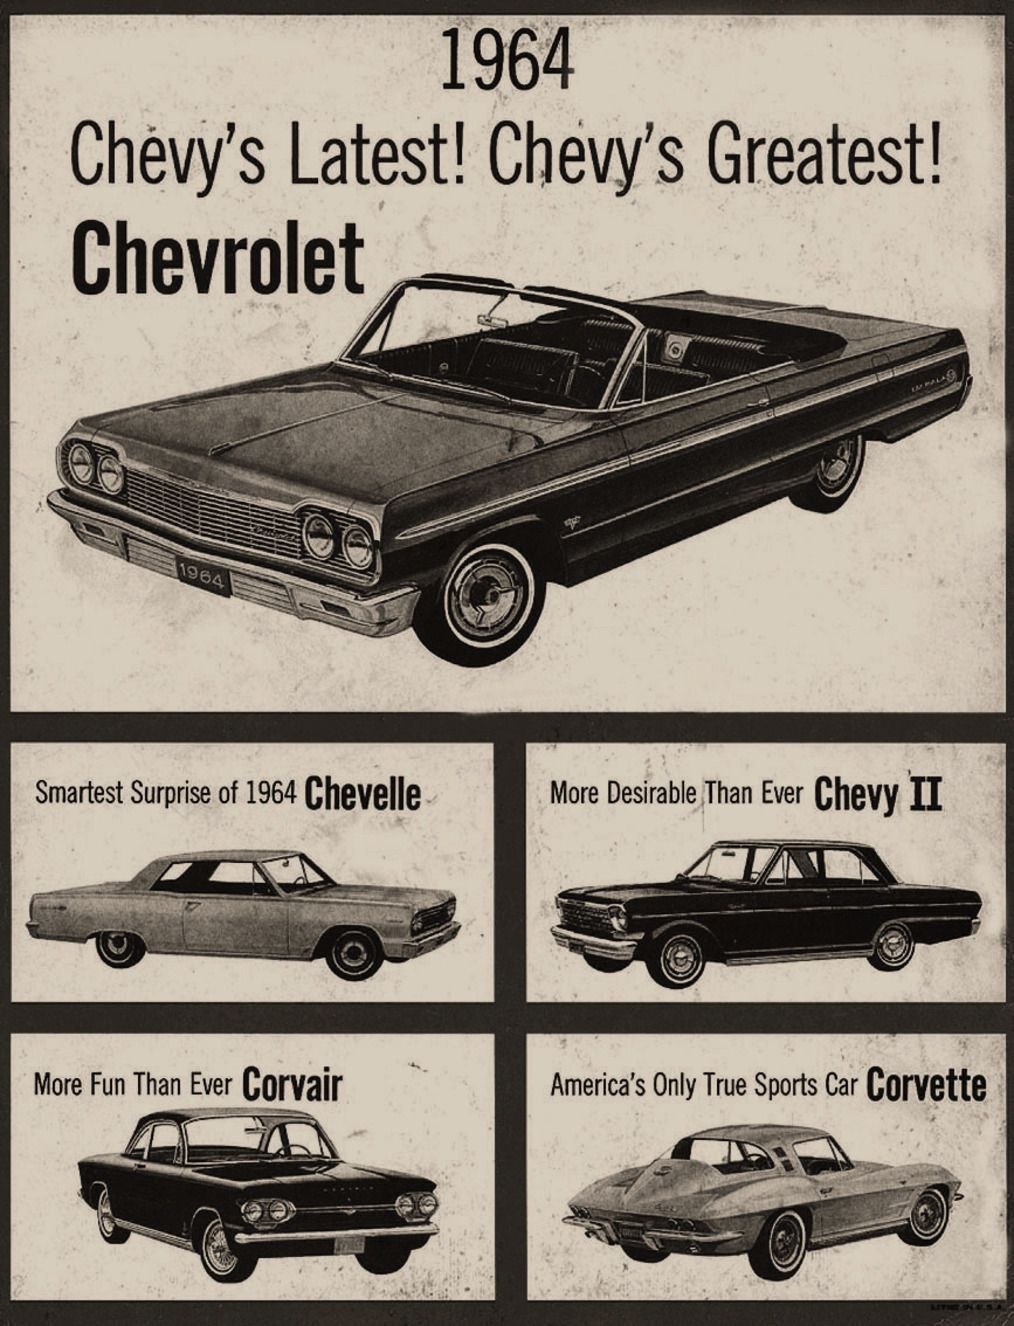 Pin By Steve On Chevy Retro Cars Classic Cars Amazing Cars